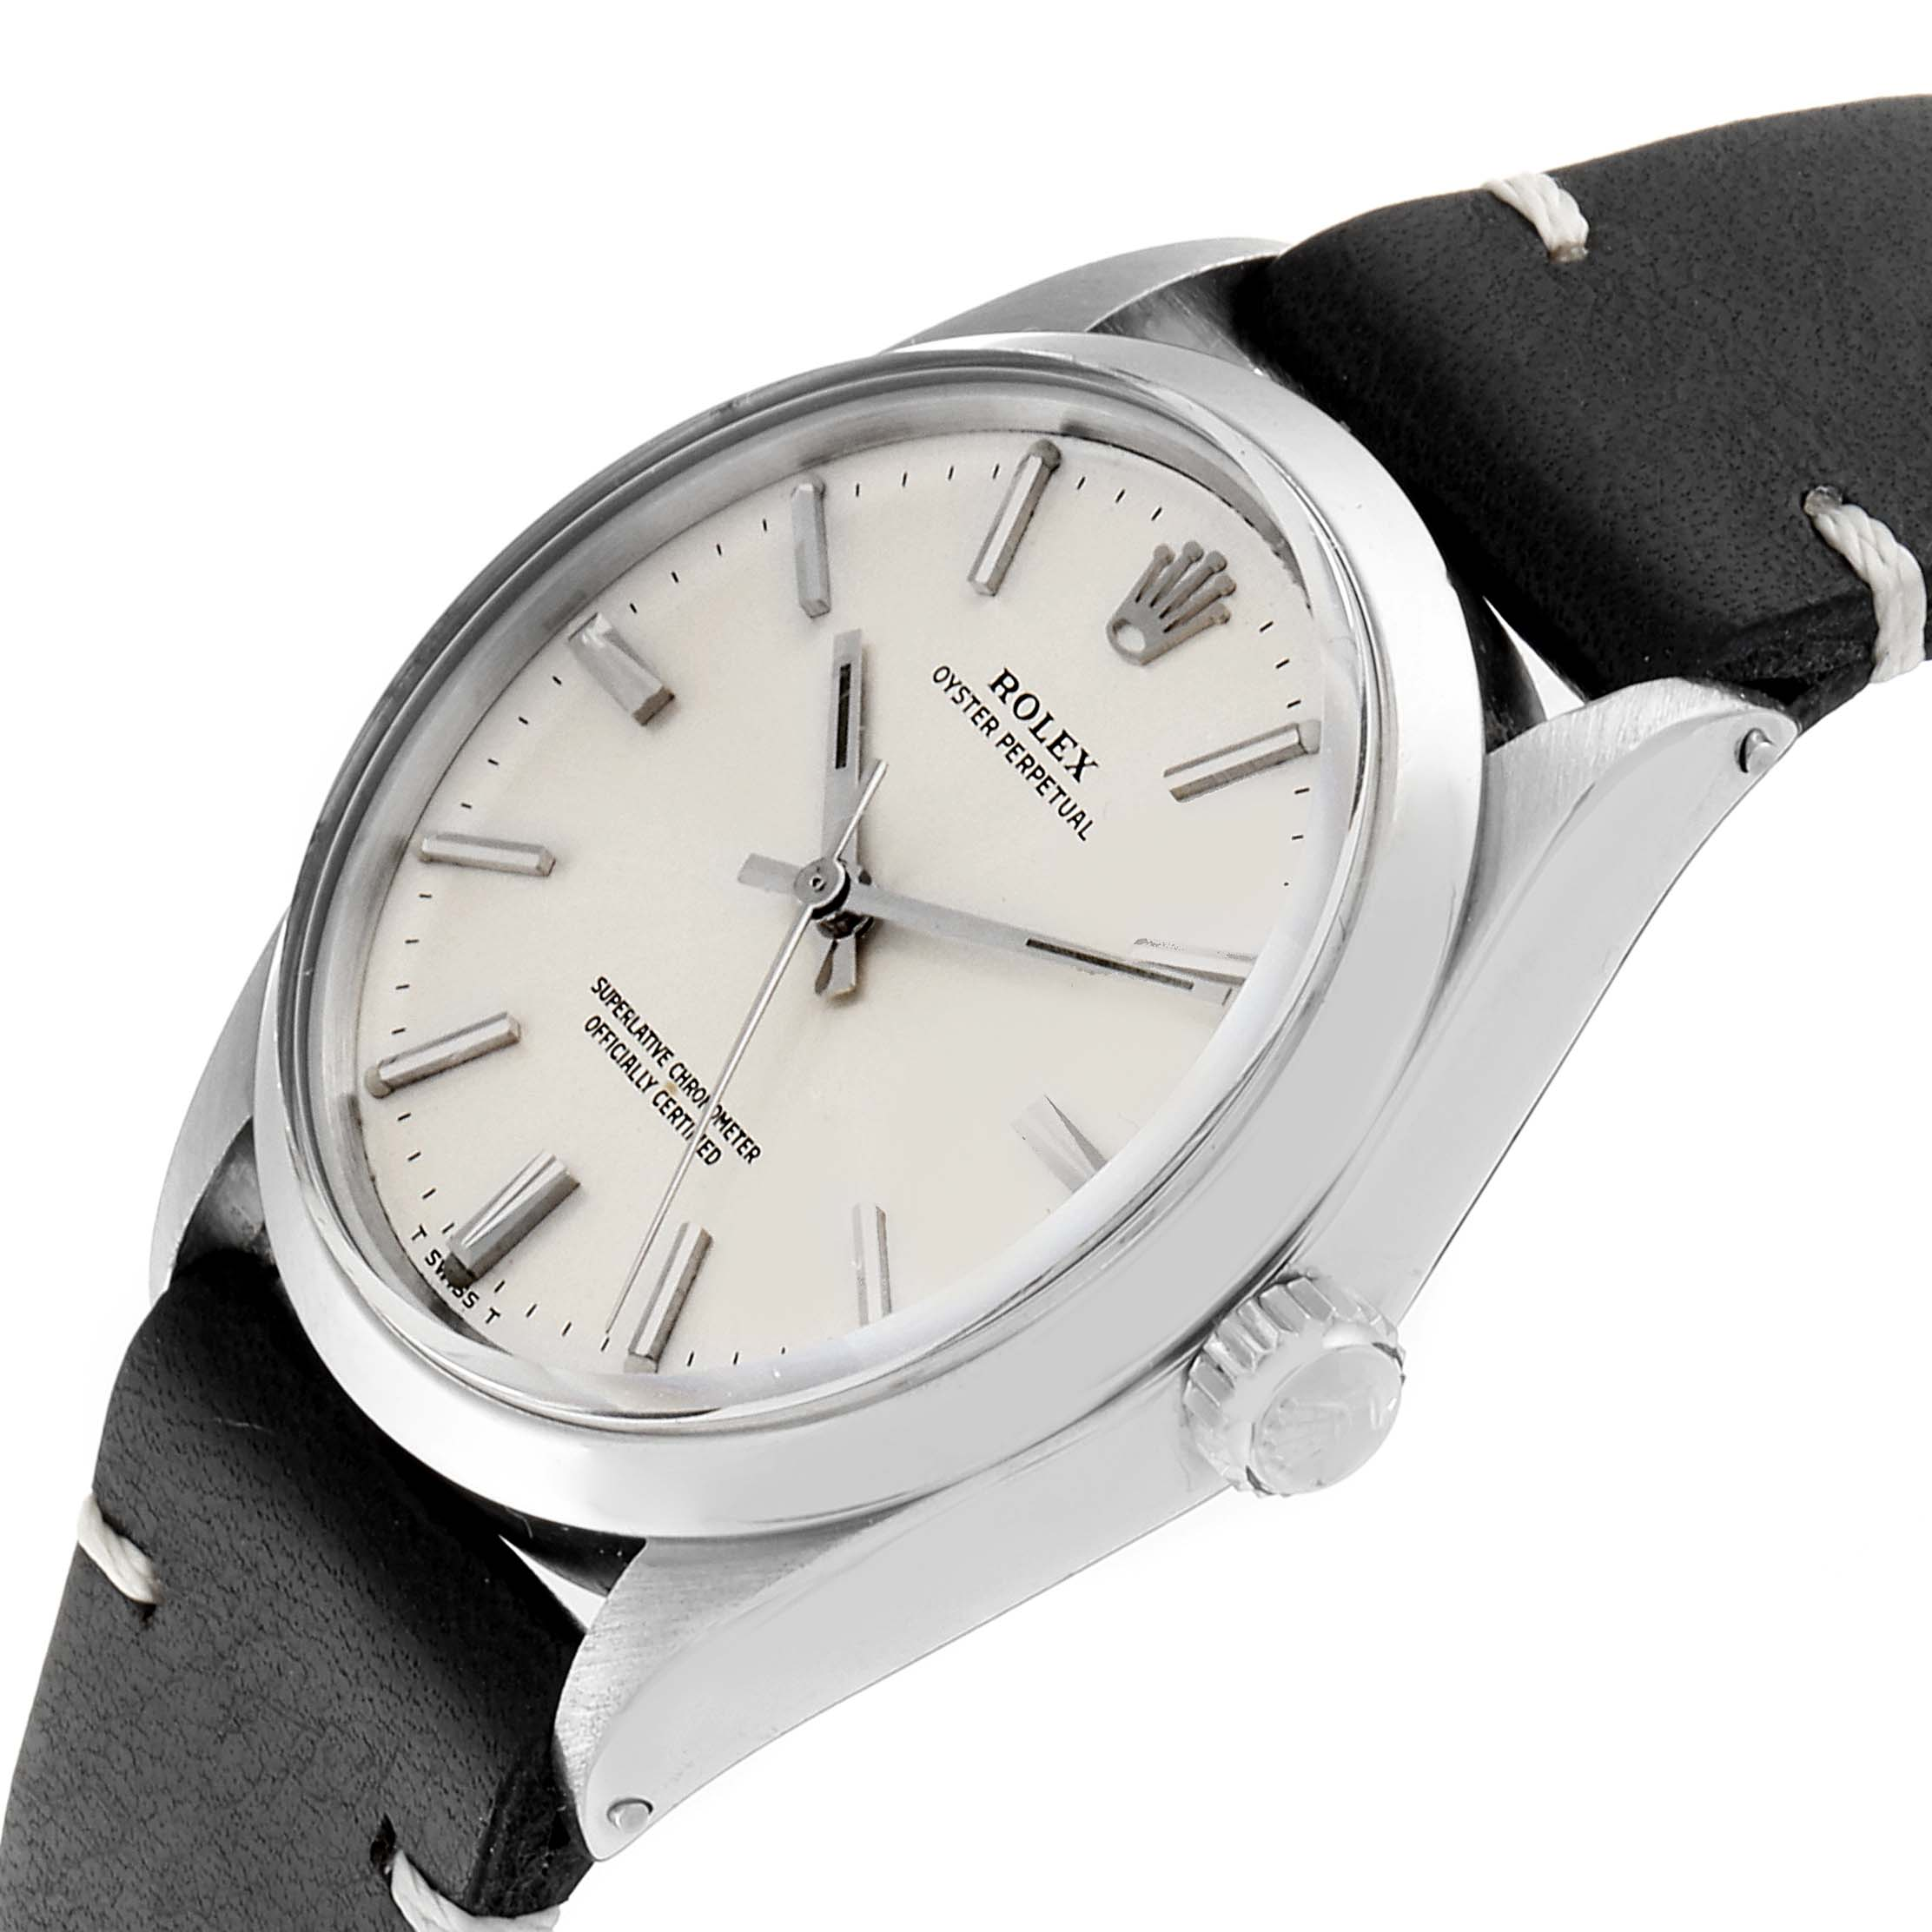 Rolex Oyster Perpetual Silver Linene Dial Vintage Steel Mens Watch 1002 SwissWatchExpo